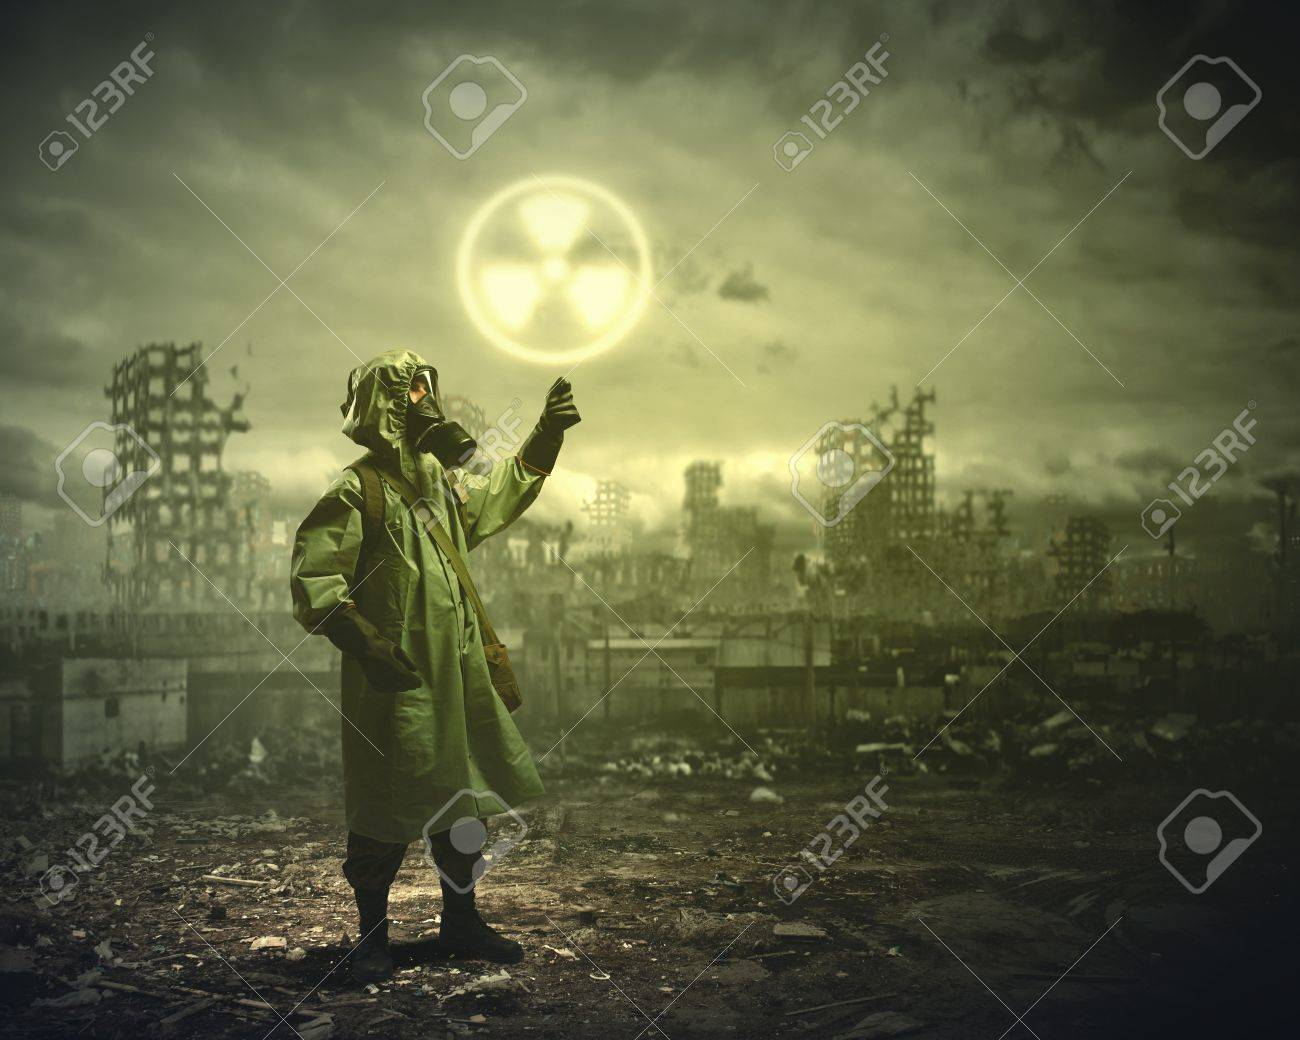 Man in respirator against nuclear background  Radioactivity concept Stock Photo - 21439654